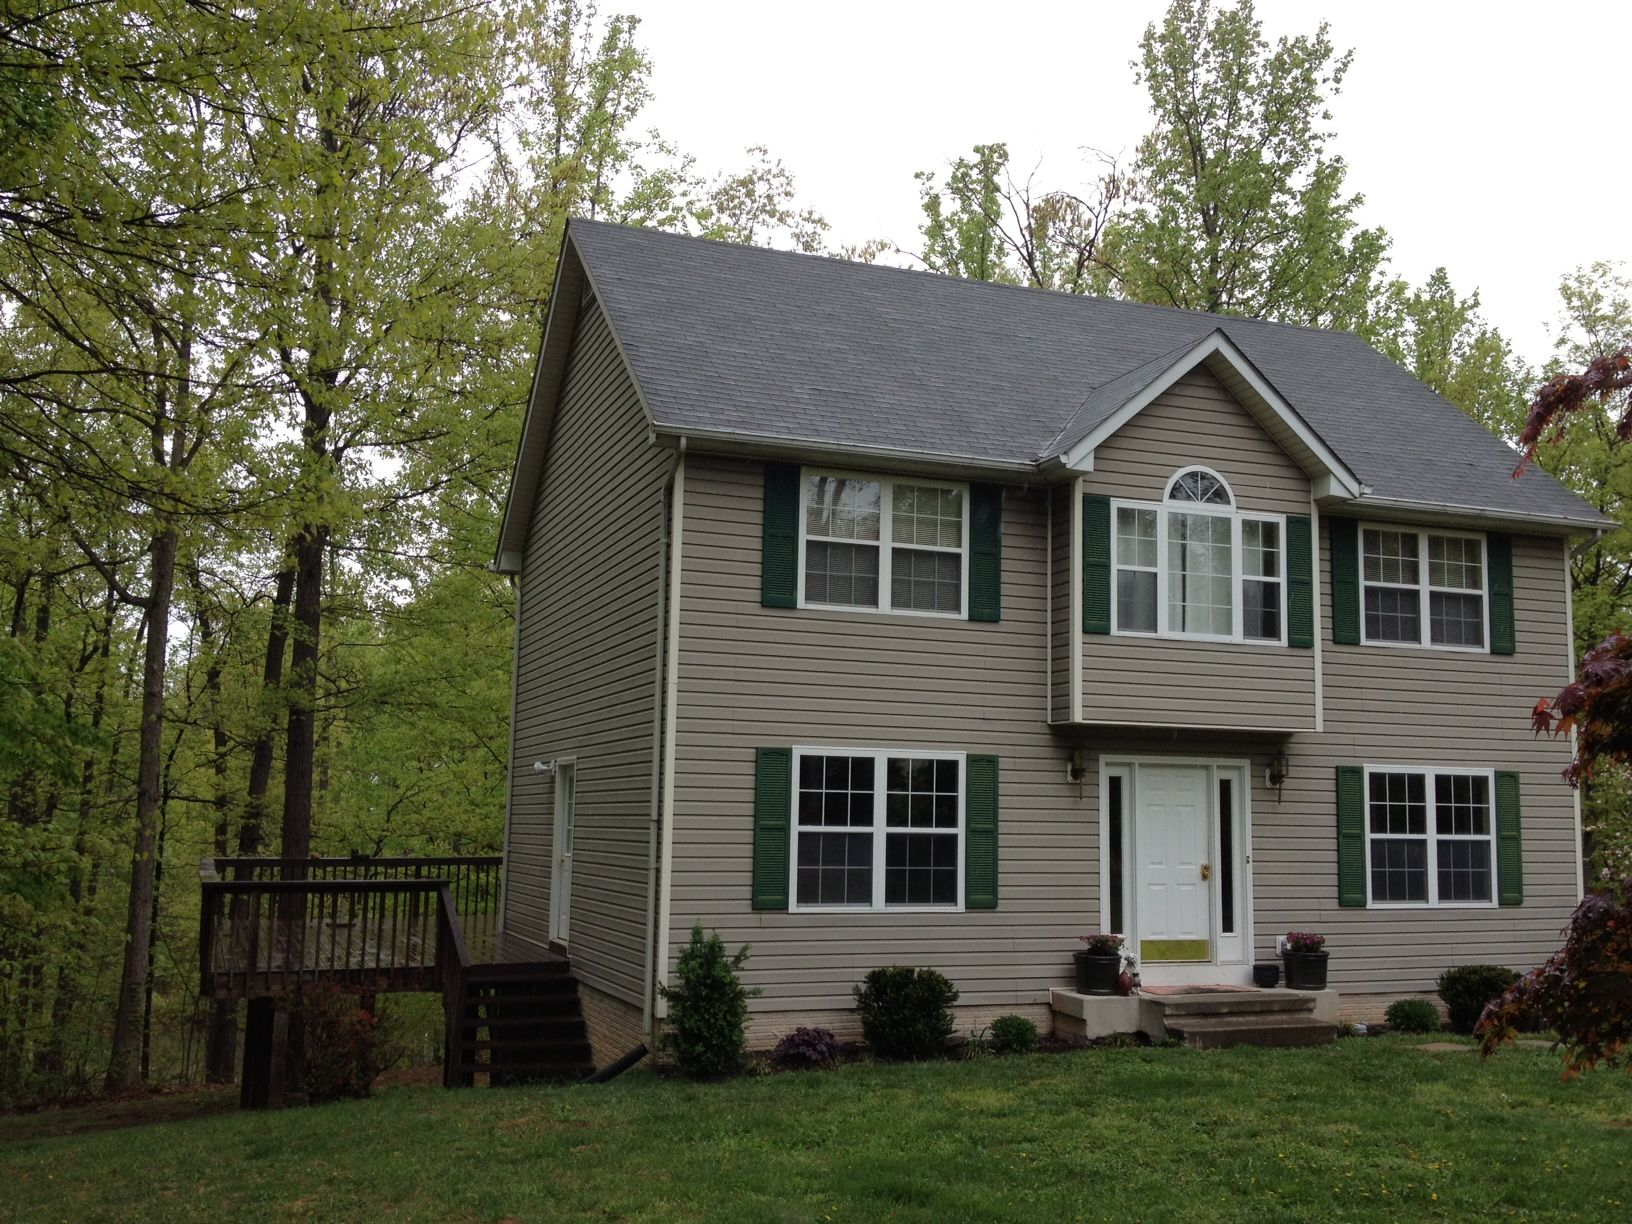 Large rear deck overlooking ponds wraps around side. Enter from kitchen or family room. Perfect for entertaining.